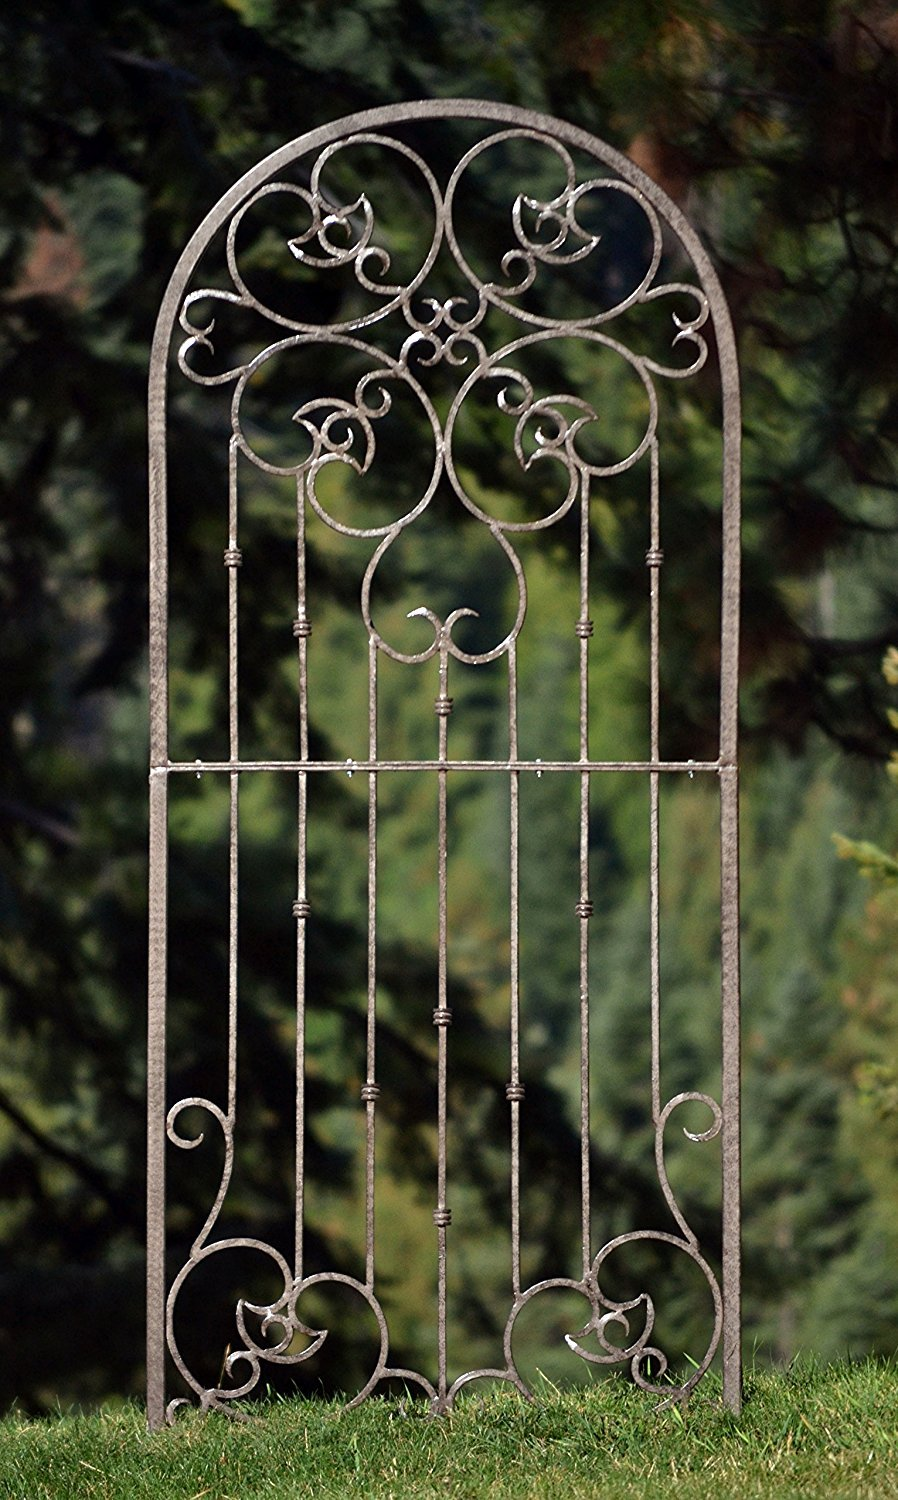 H Potter Large Garden Trellis Wrought Iron Heavy Scroll Metal Decoration Powder Coat Finish-Lawn, Patio & Wall Decor Screen for Rose, Clematis, Ivy Weather Resistant Patio Deck Wall Art Model GAR545 by H Potter